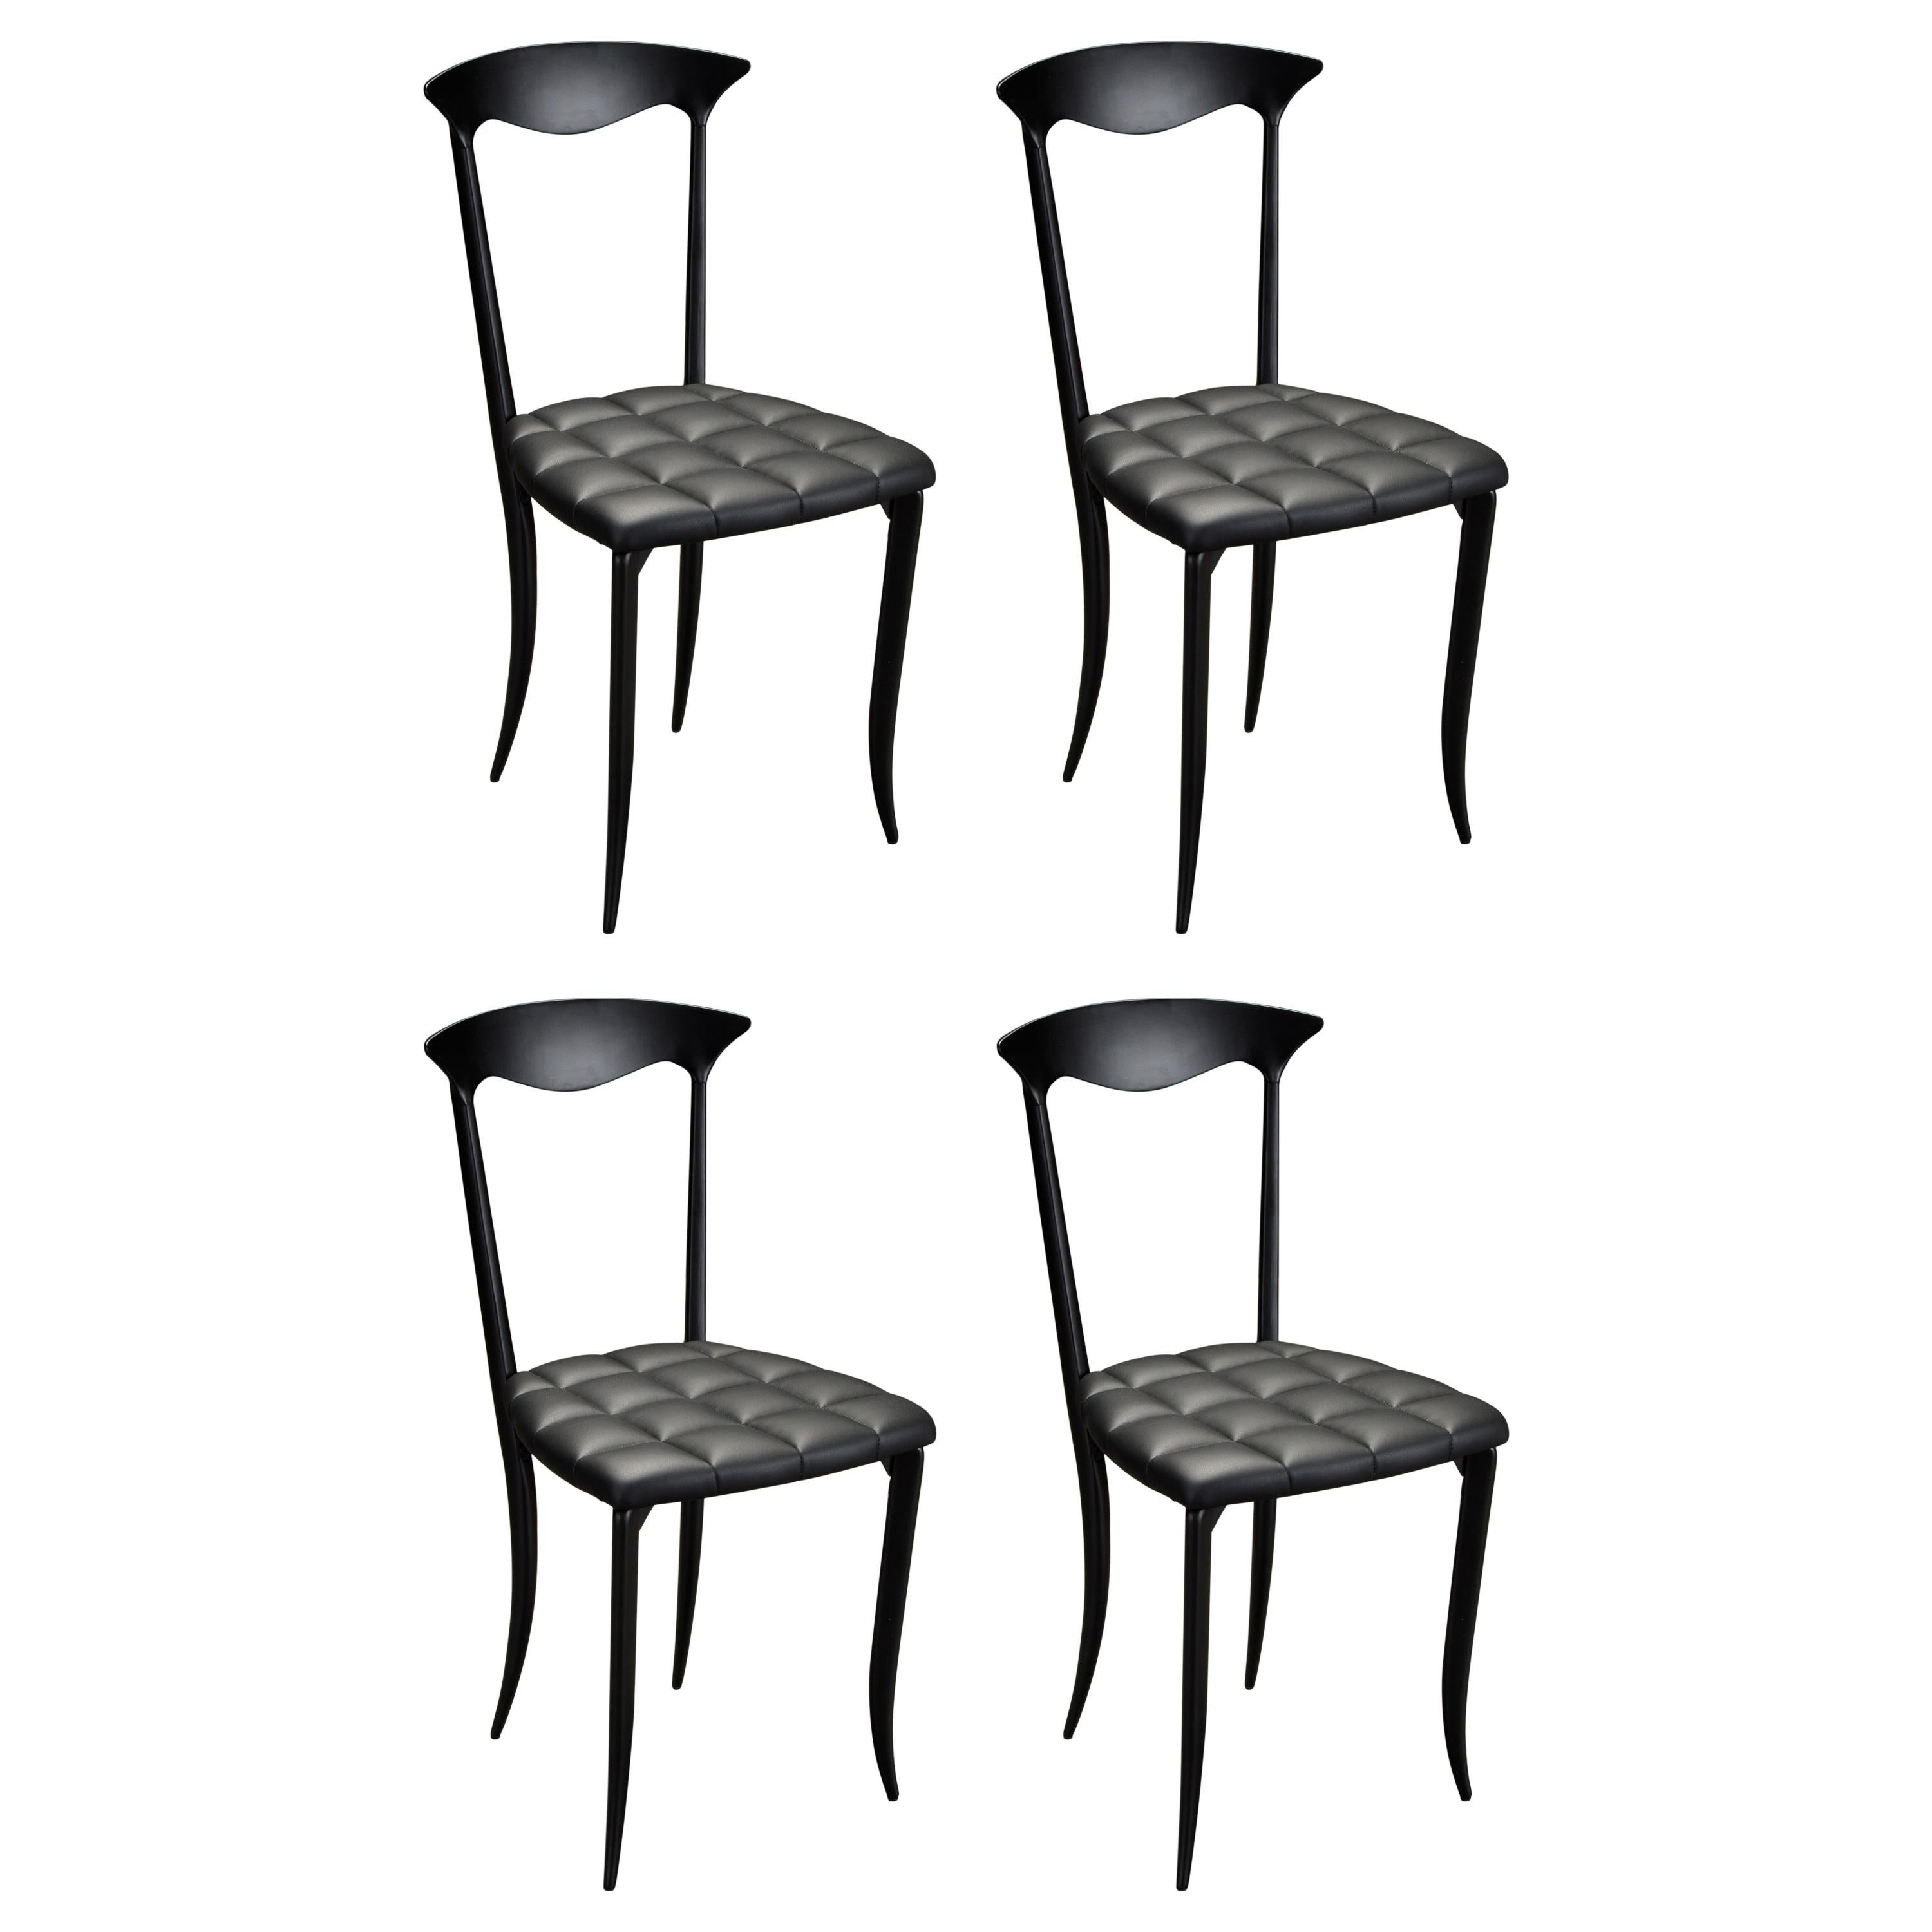 'Charming' Aluminum and Leather Dining Chairs by Fasem Italy, New